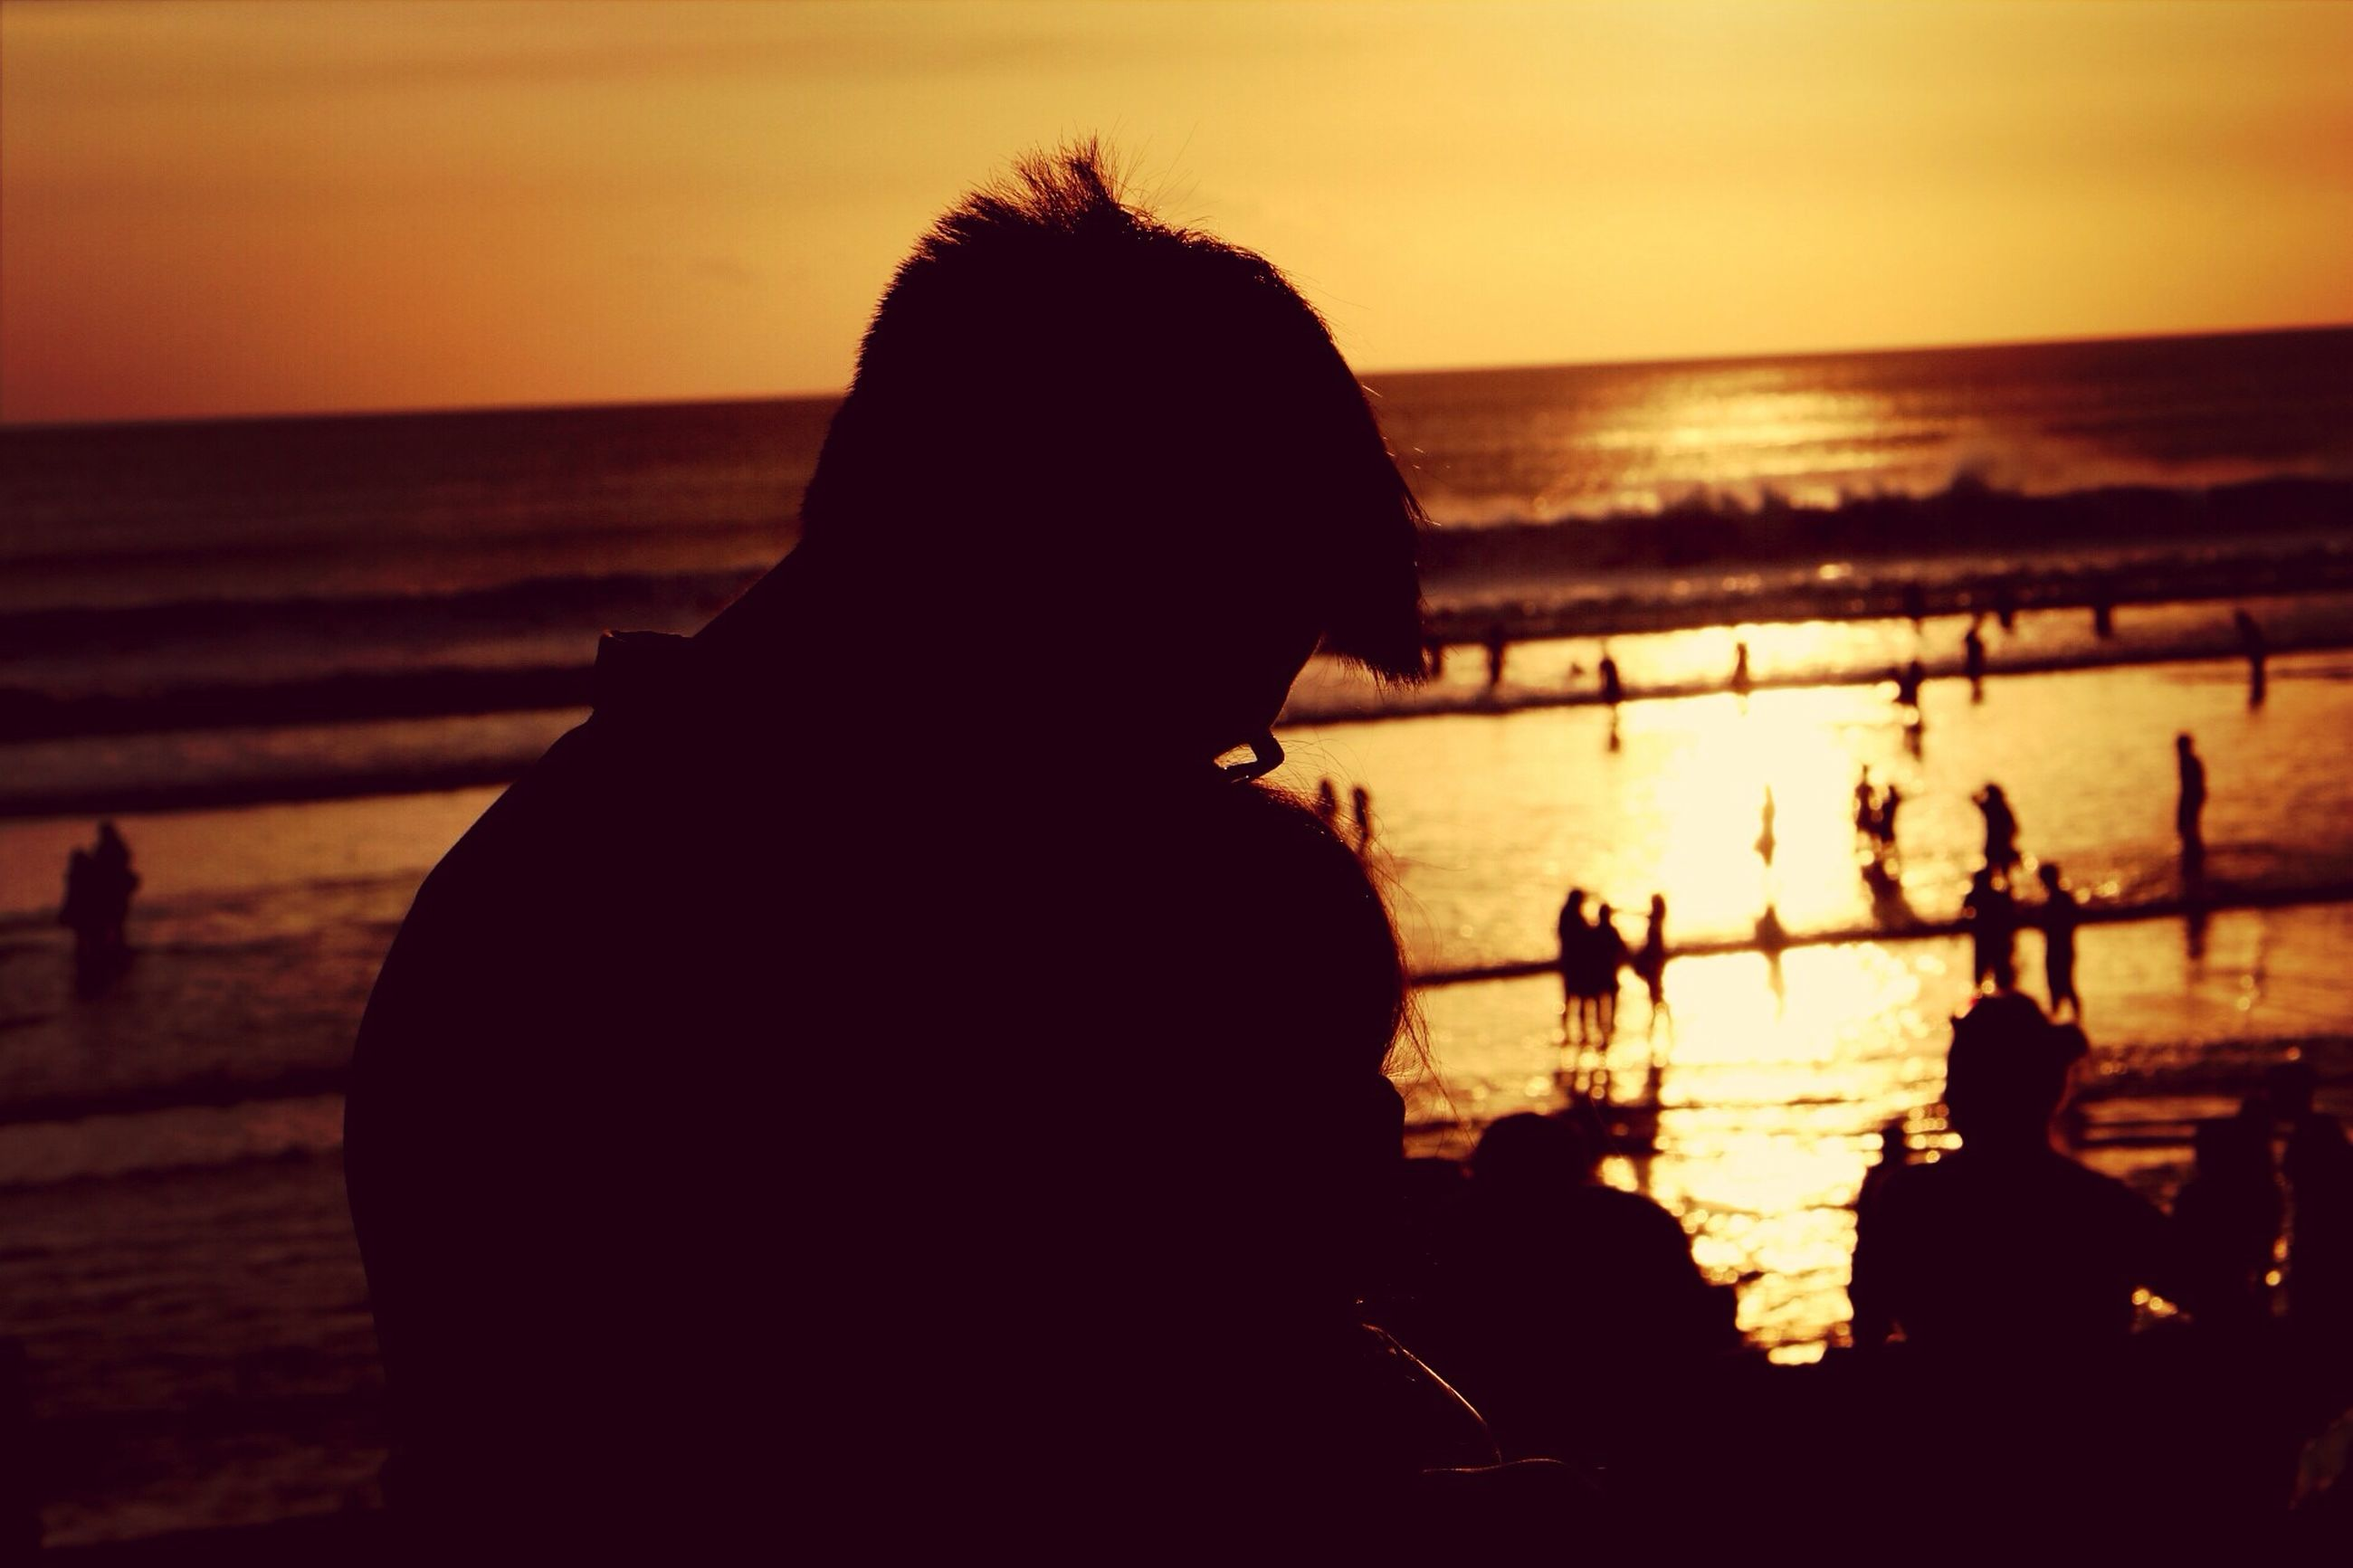 sunset, sea, water, silhouette, horizon over water, beach, orange color, leisure activity, lifestyles, person, shore, sky, scenics, men, beauty in nature, sun, idyllic, tranquil scene, tranquility